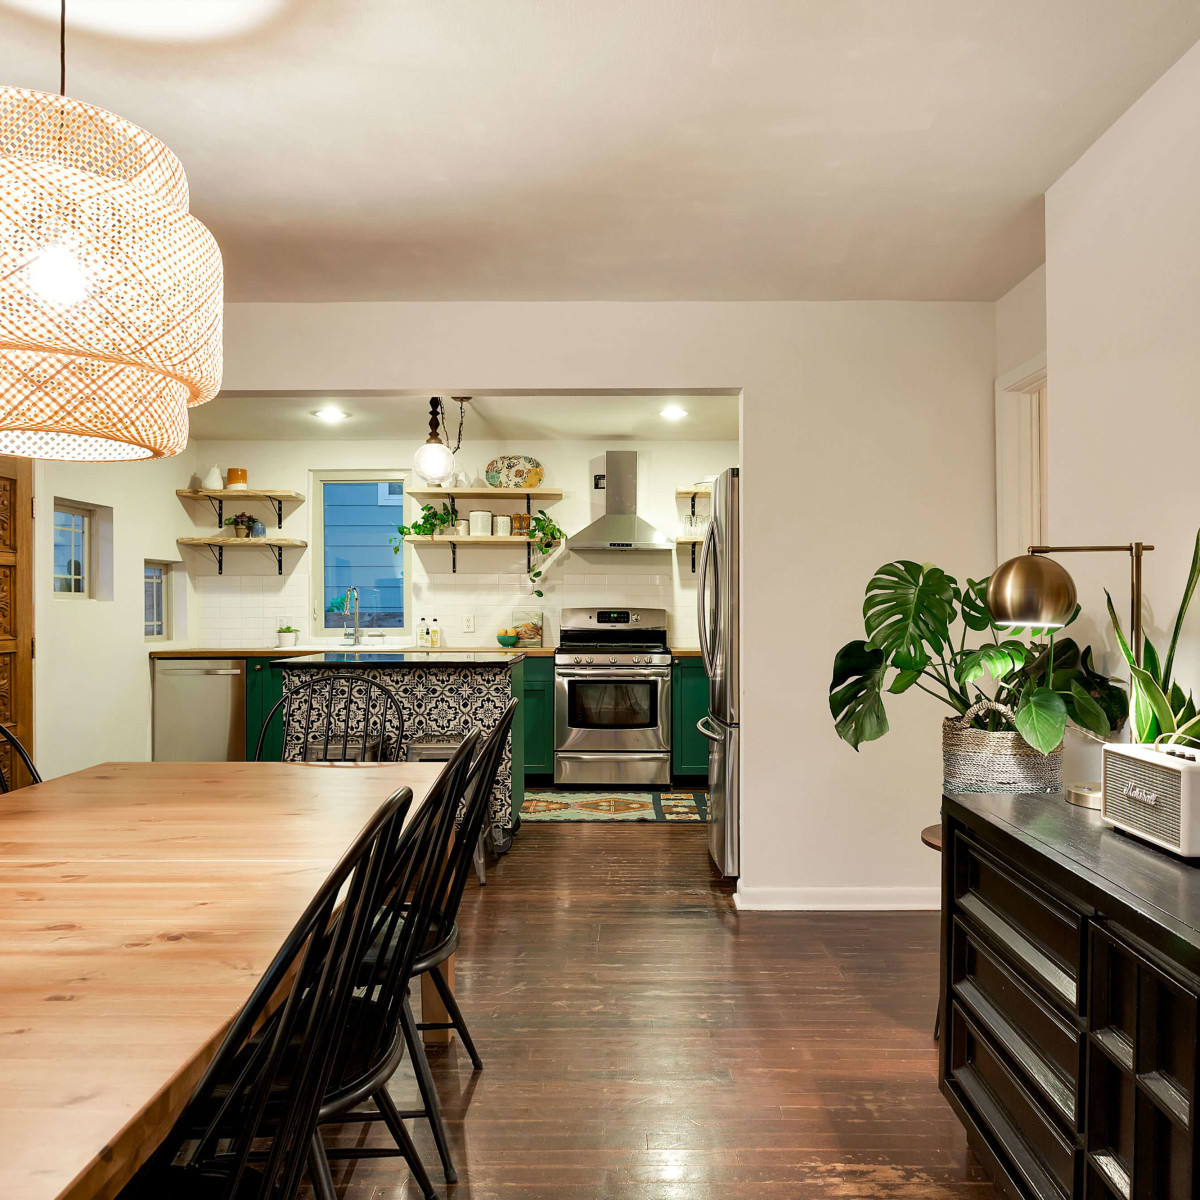 East Austin house home 1131 Poquito Street 78702 dining room kitchen